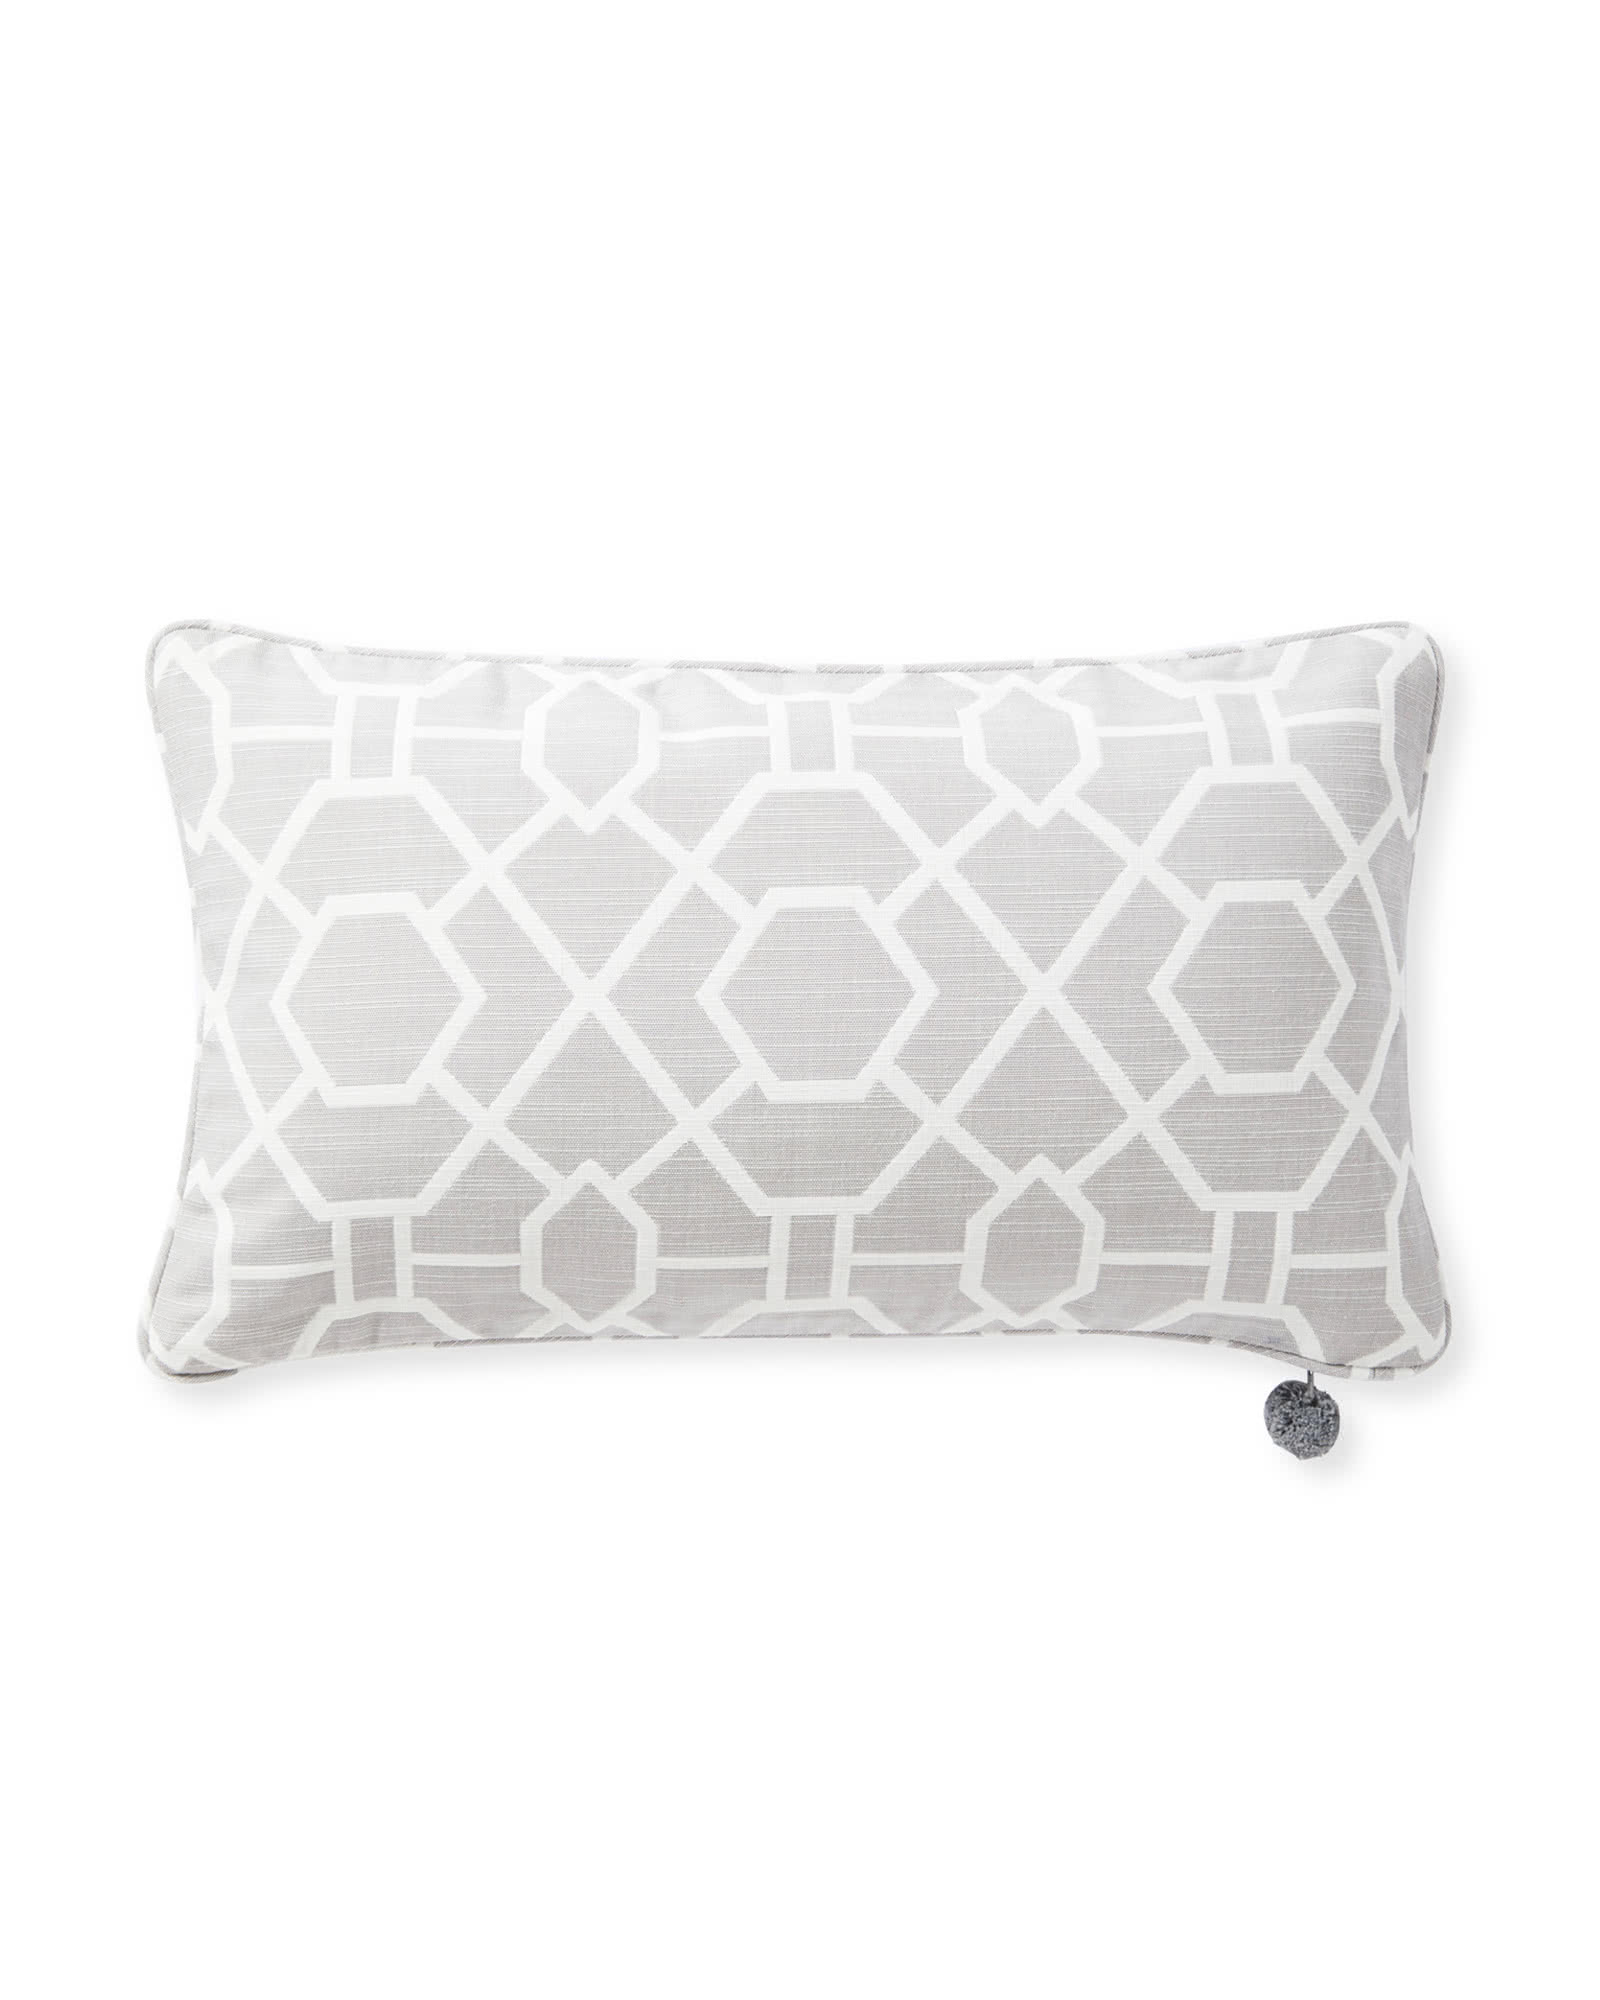 Perennials® Trellis Pillow Cover, Smoke